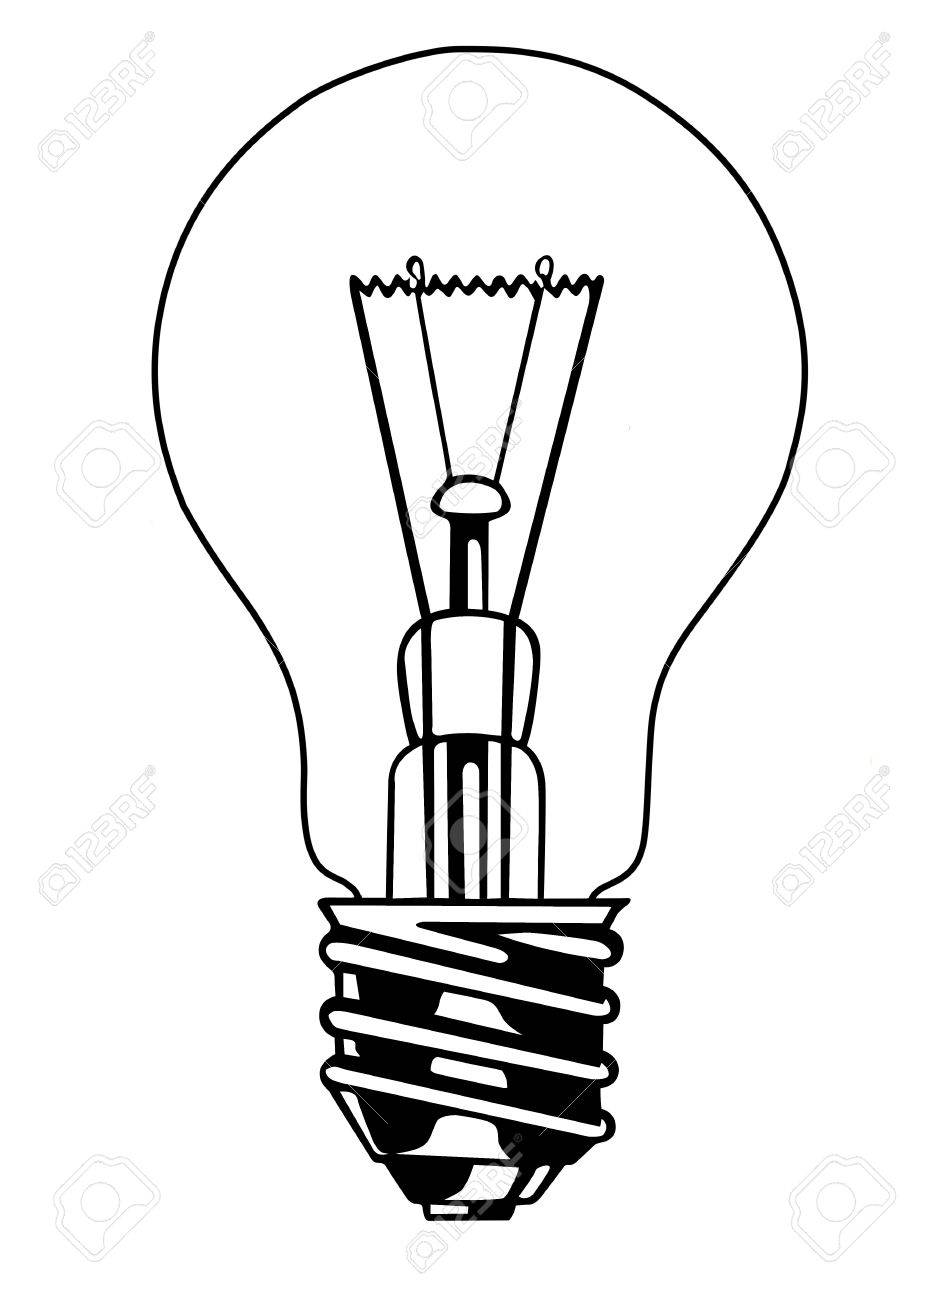 light bulb on white background royalty free cliparts vectors and stock illustration image 9120979 light bulb on white background